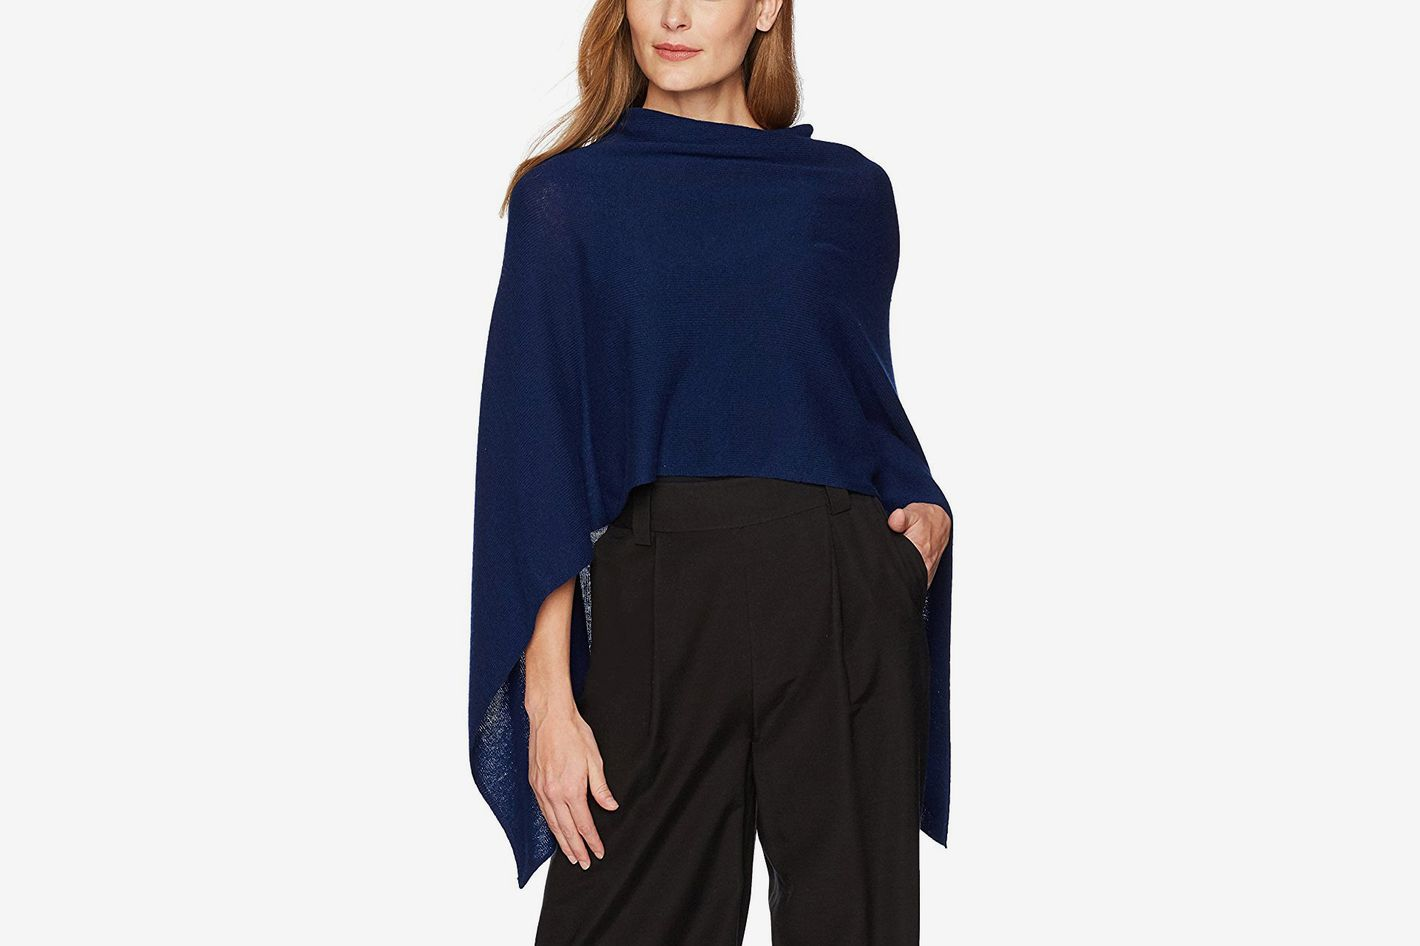 Lark & Ro Women's 100% Cashmere Soft Topper Sweater